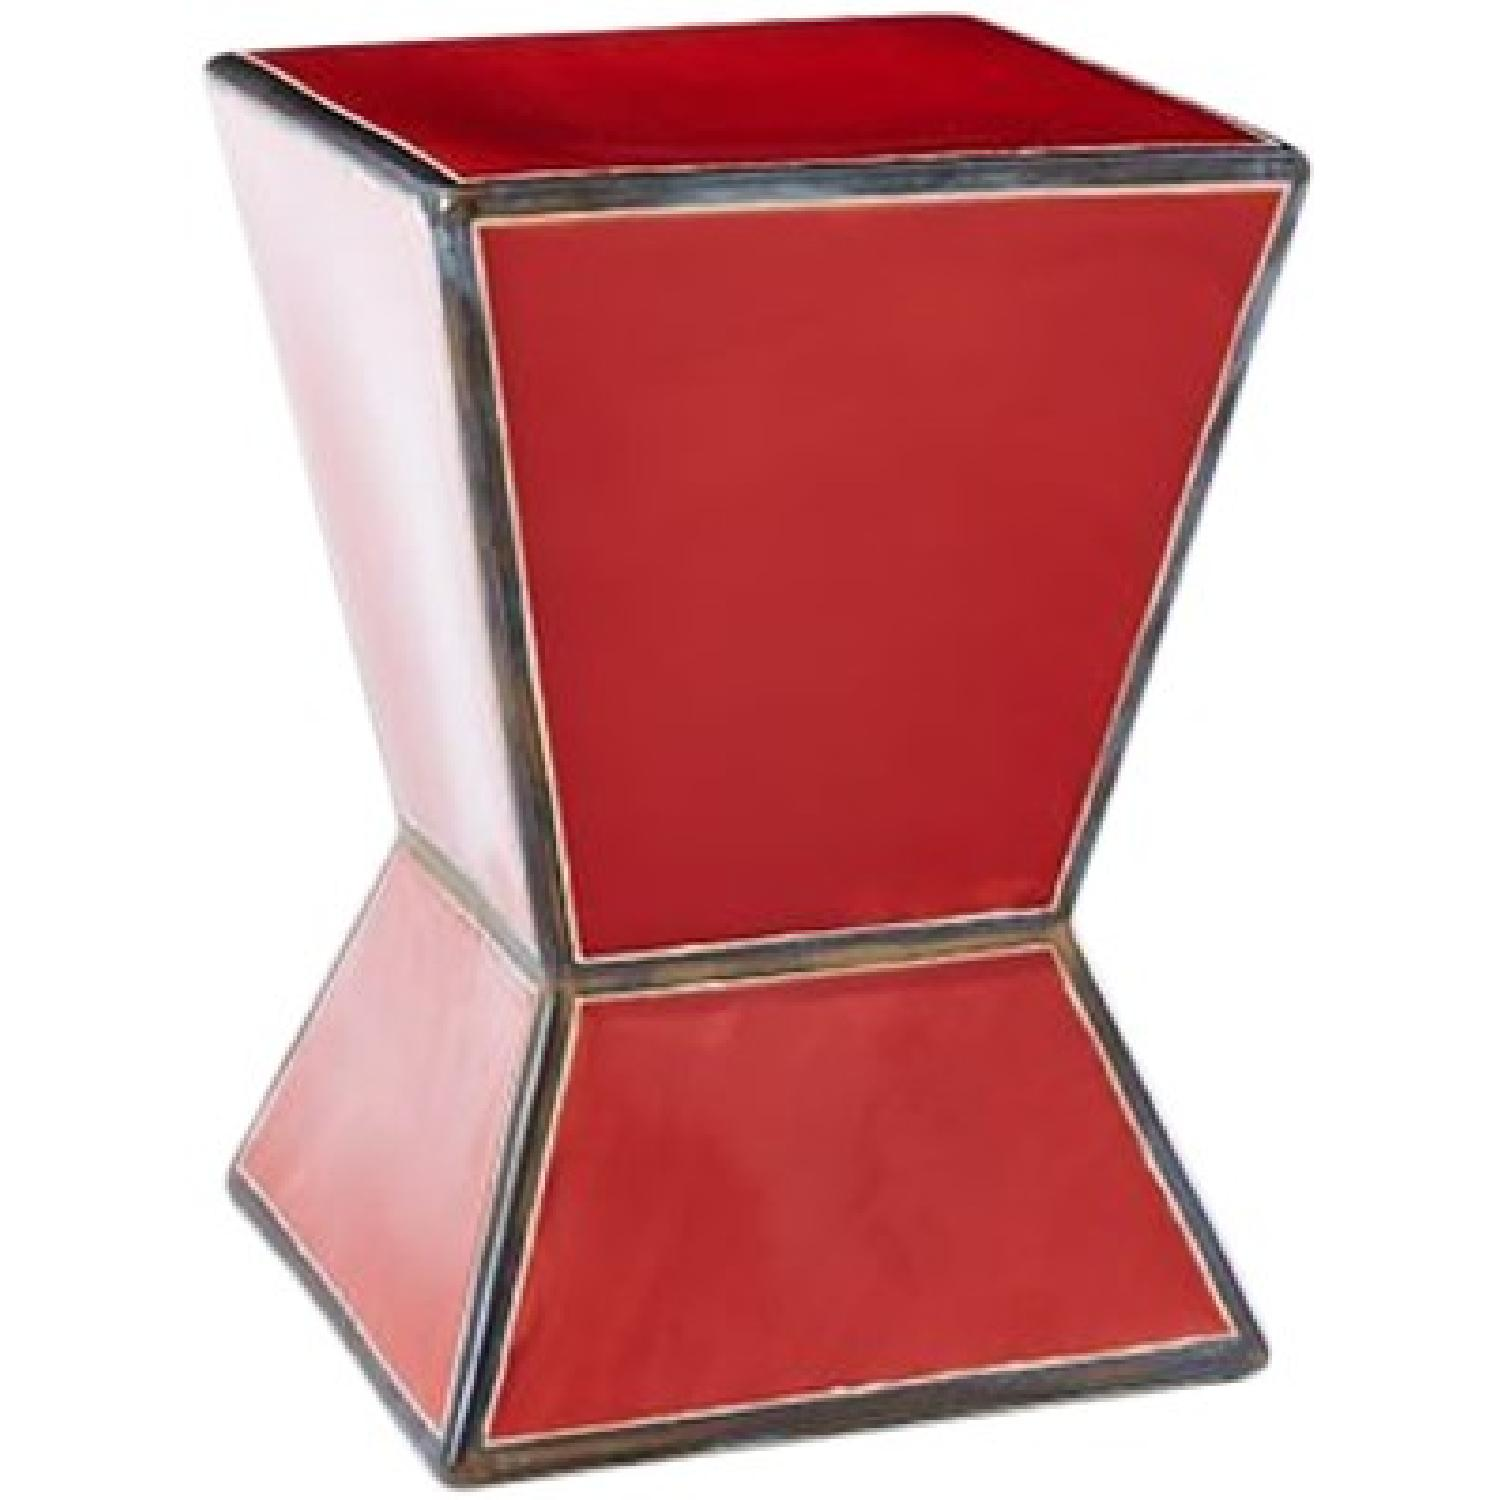 West Elm Ceramic Trapezoid Red Side Table - image-0